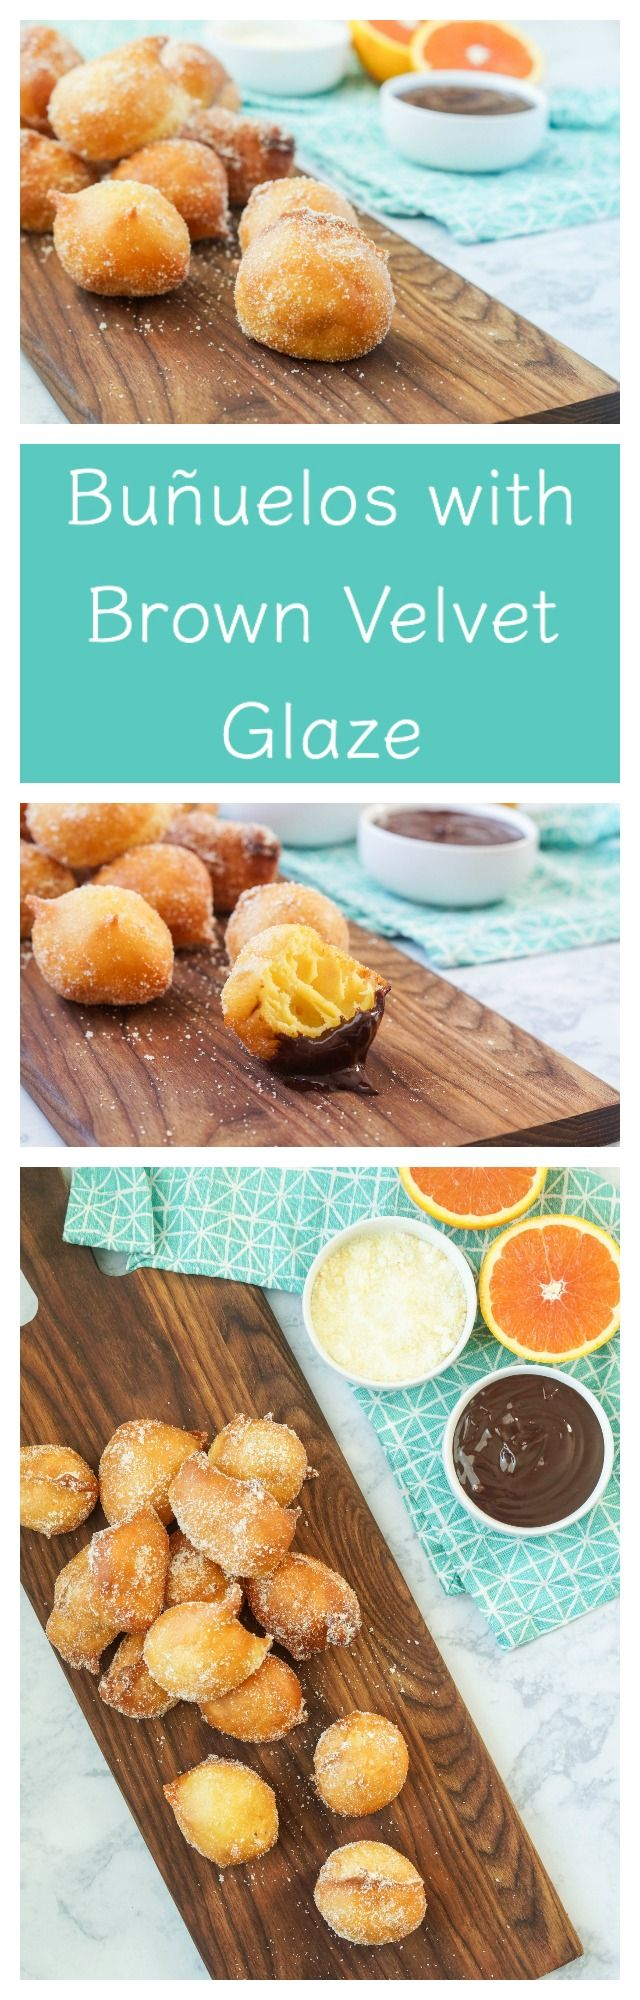 120 best Bread and Pastries images on Pinterest